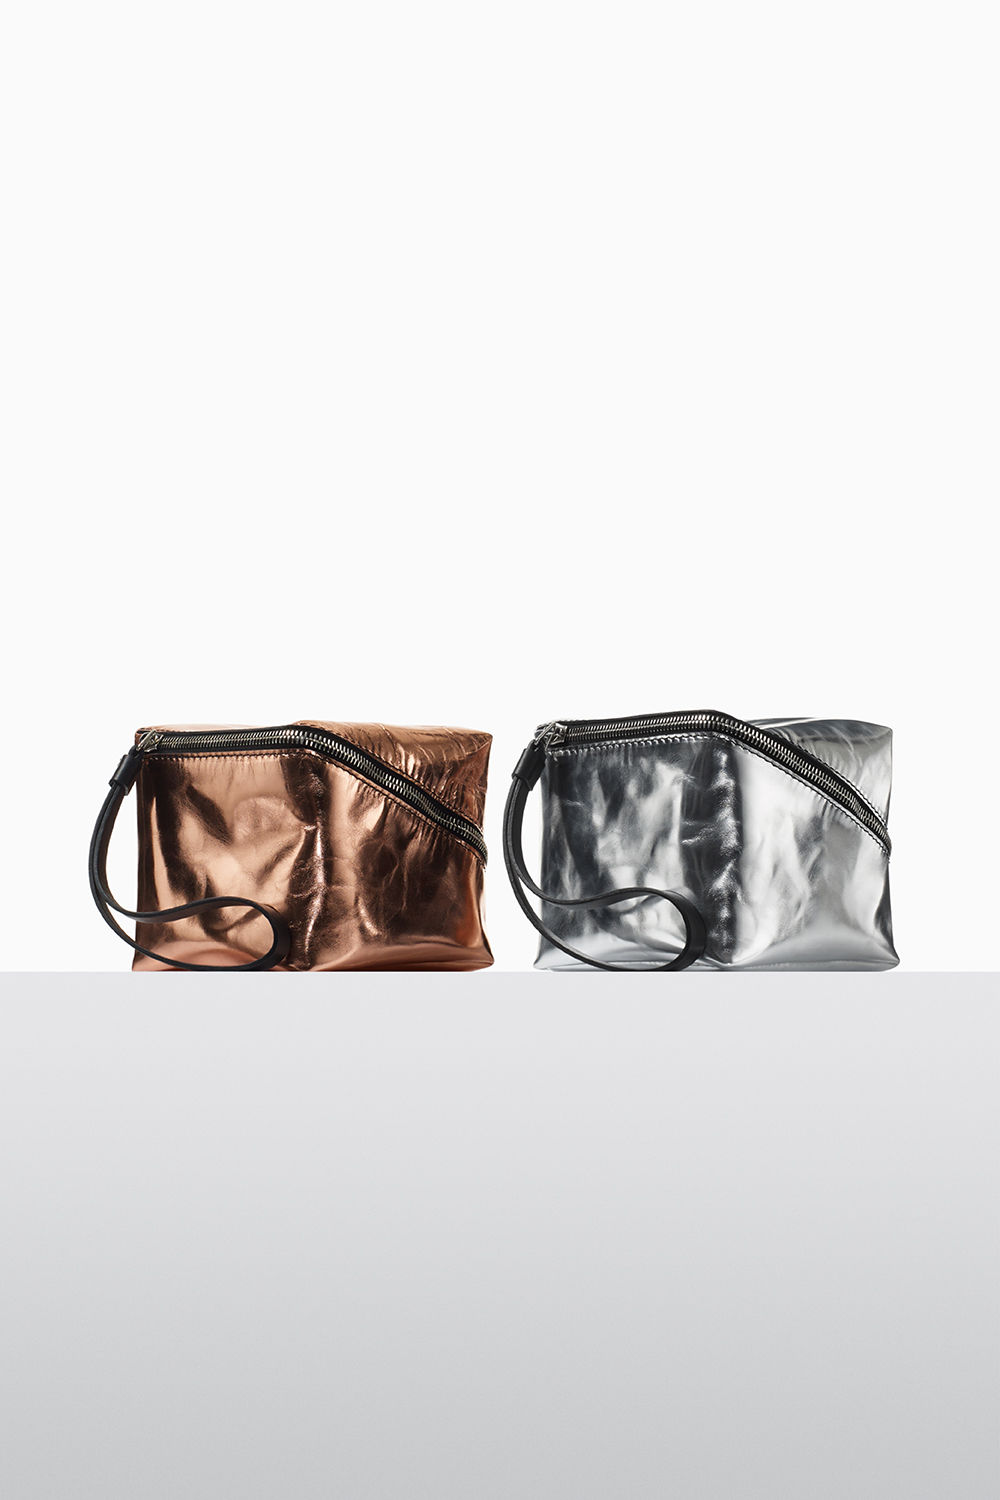 proenza schouler fall 2017 rose gold and silver soft metallic leather mini cube